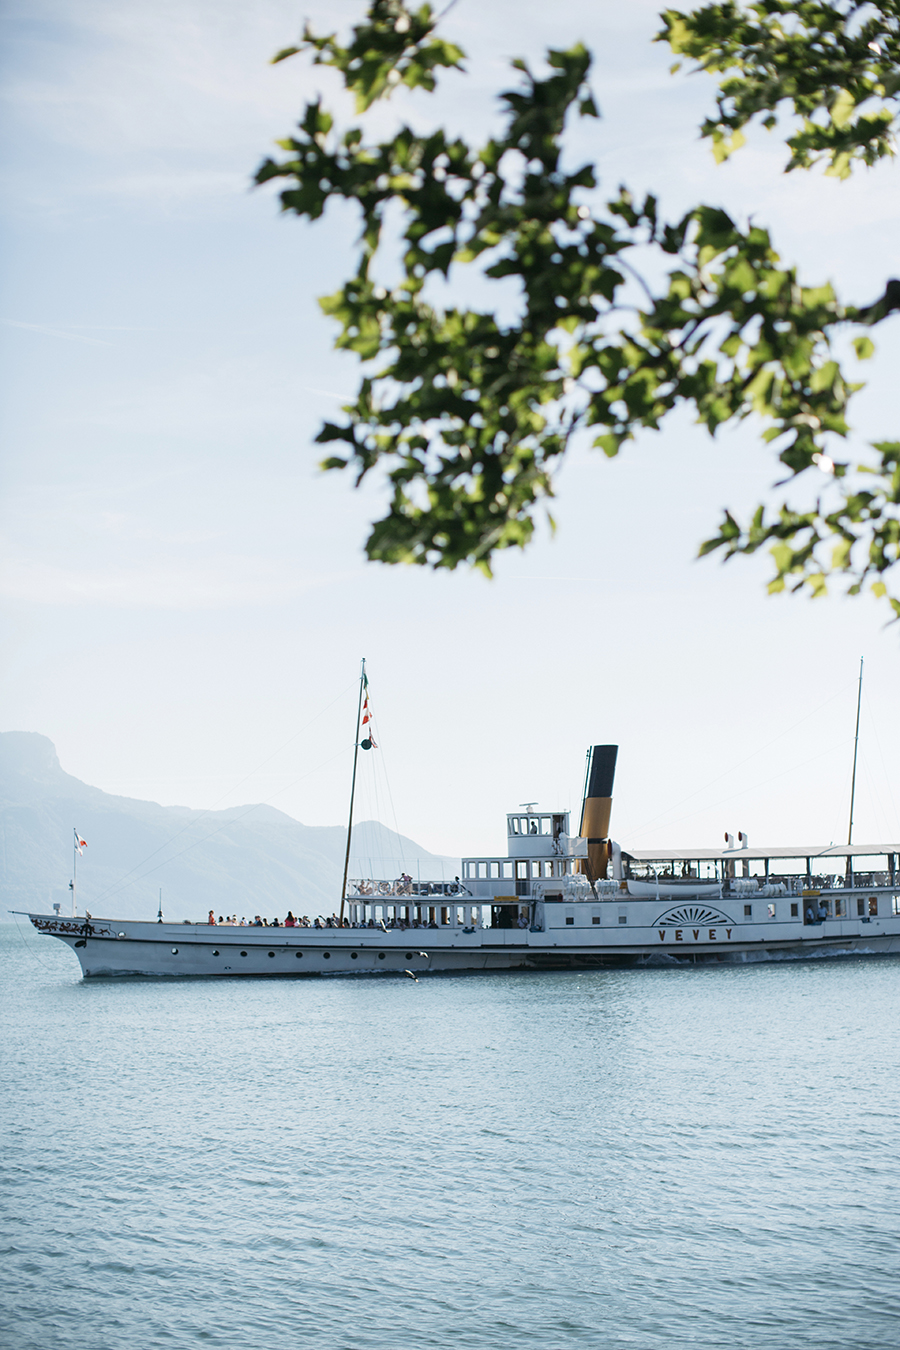 roadtrip_la_suisse_grand_hotel_du_lac_vevey_11